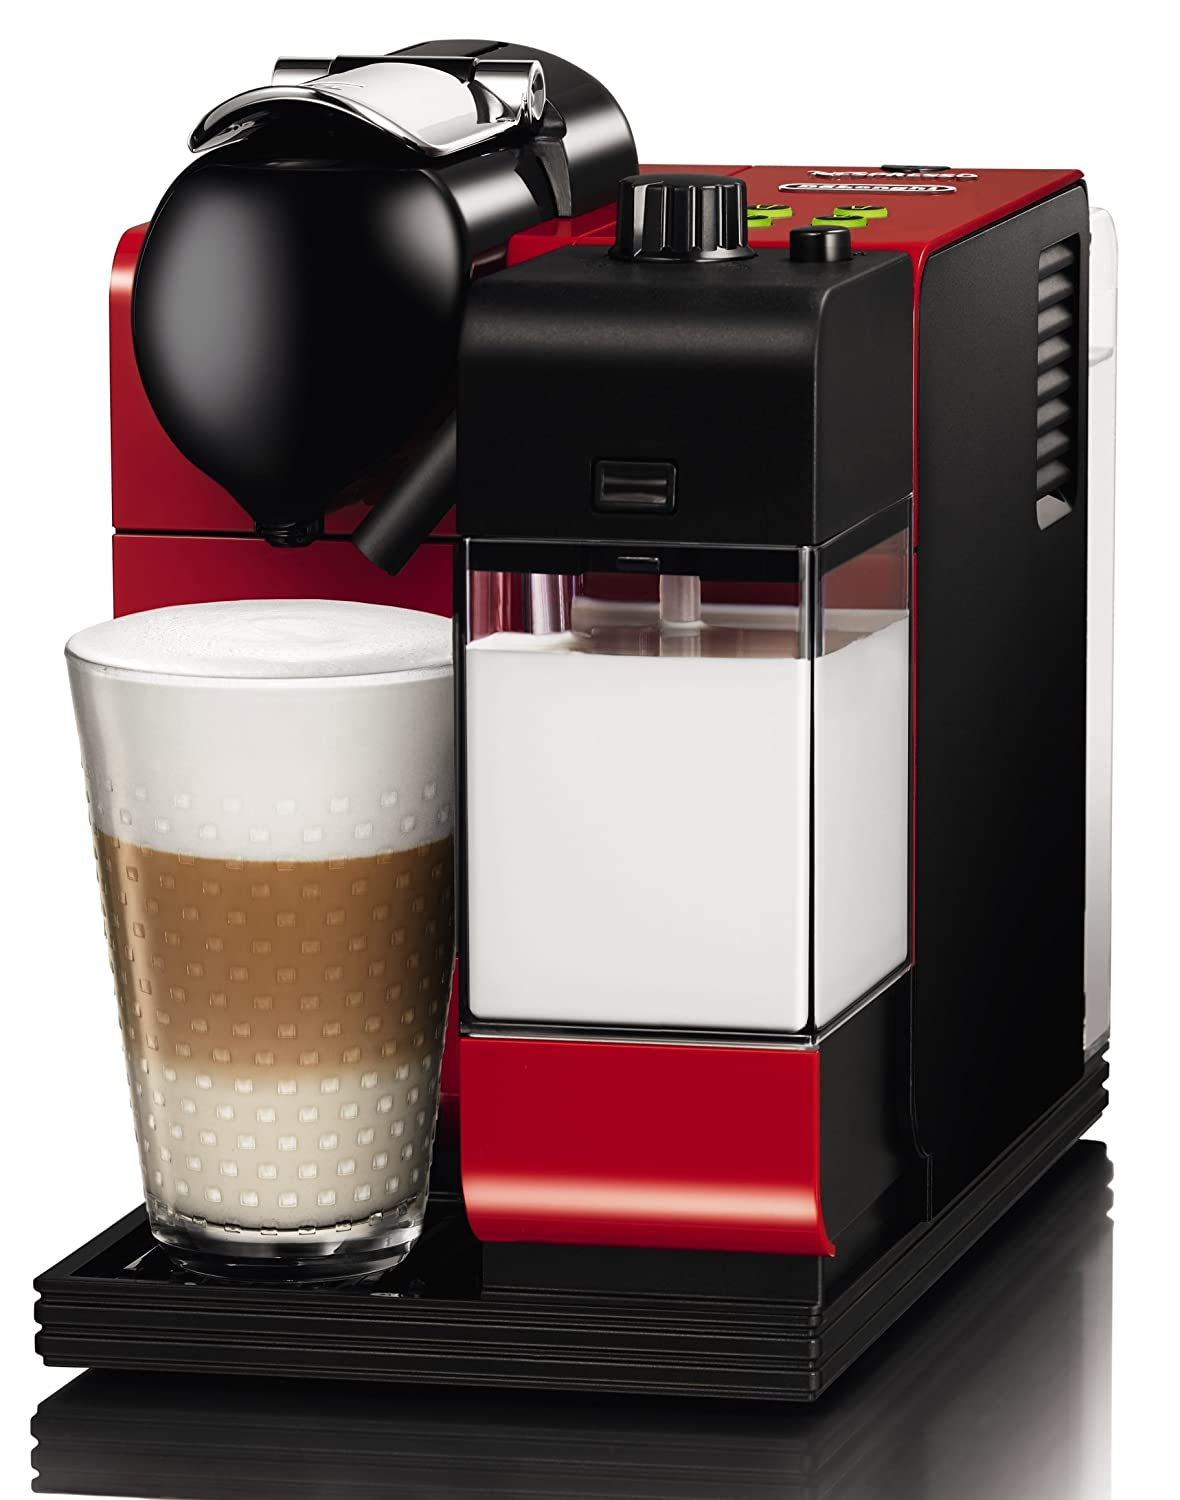 delonghi en520 r nespresso lattissima plus coffee maker red 2. Black Bedroom Furniture Sets. Home Design Ideas